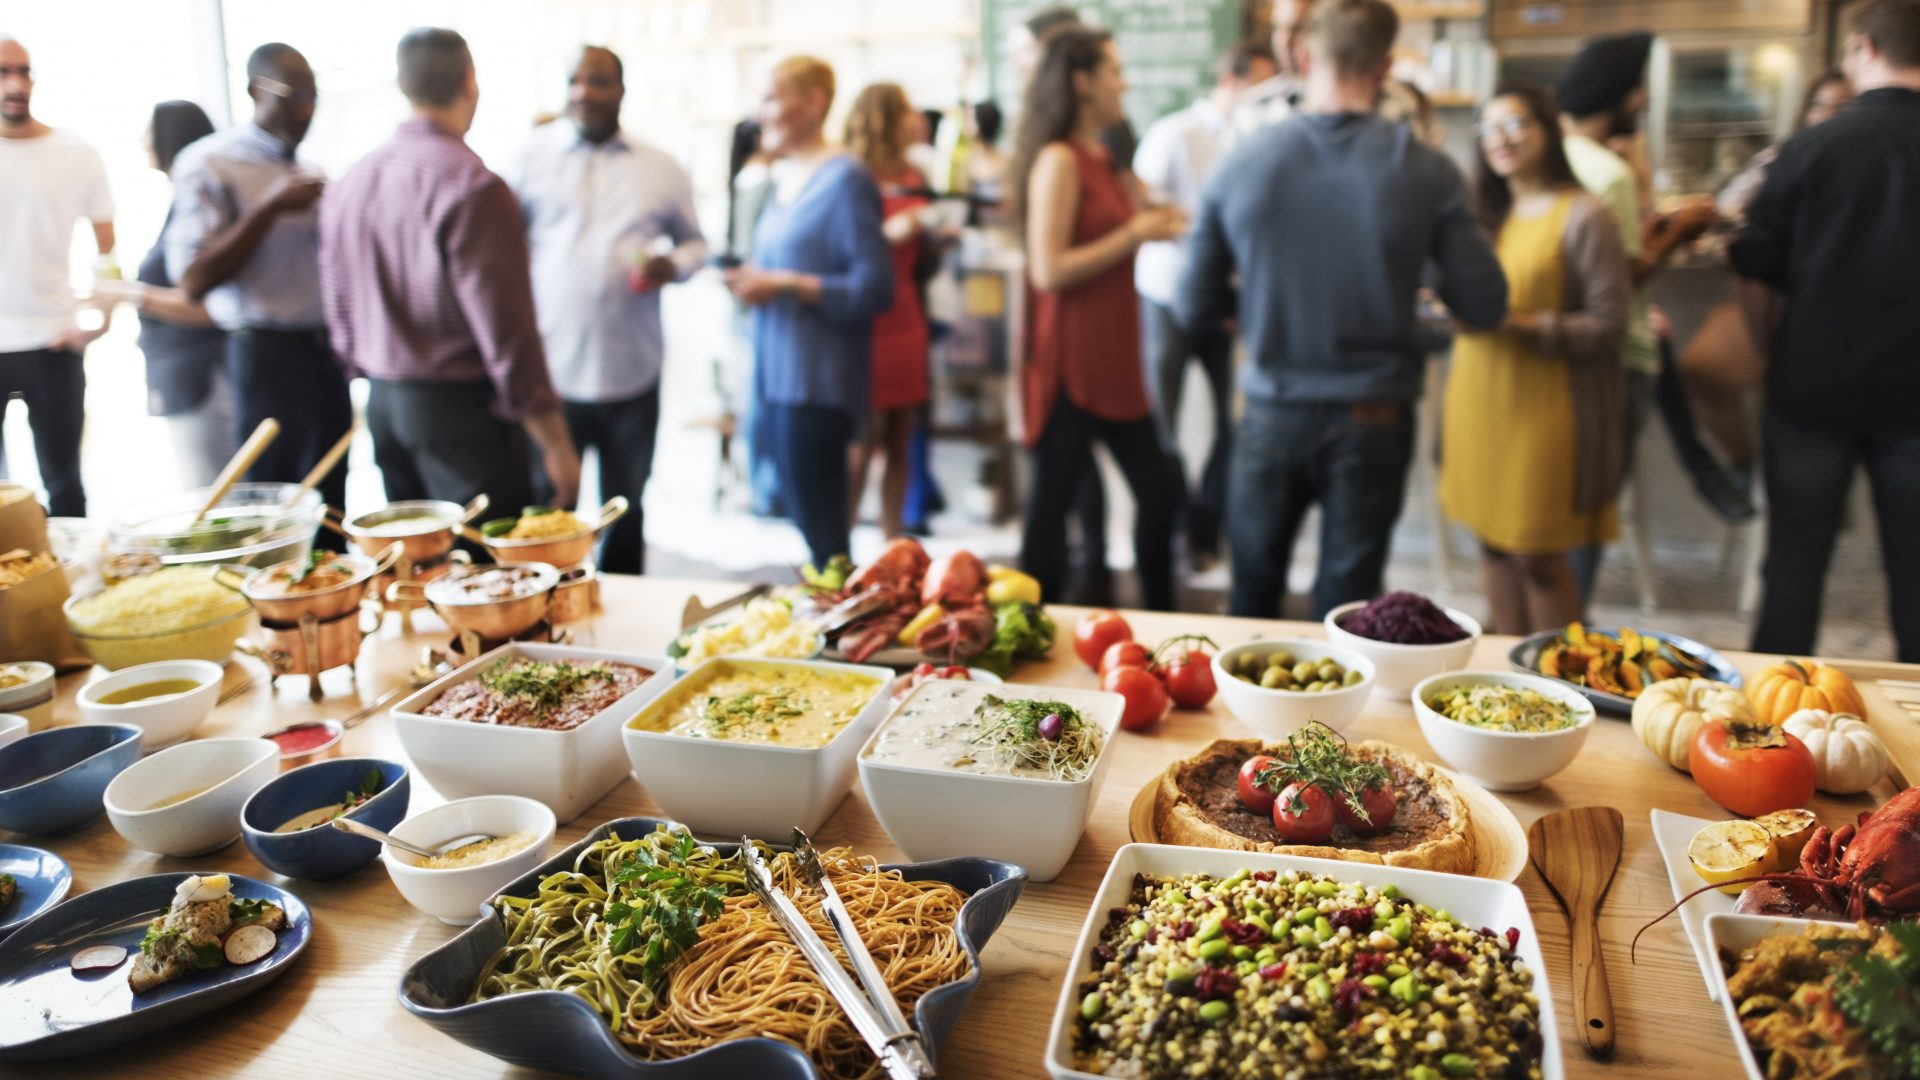 Meal & Non-Meal Events: Pros & Cons